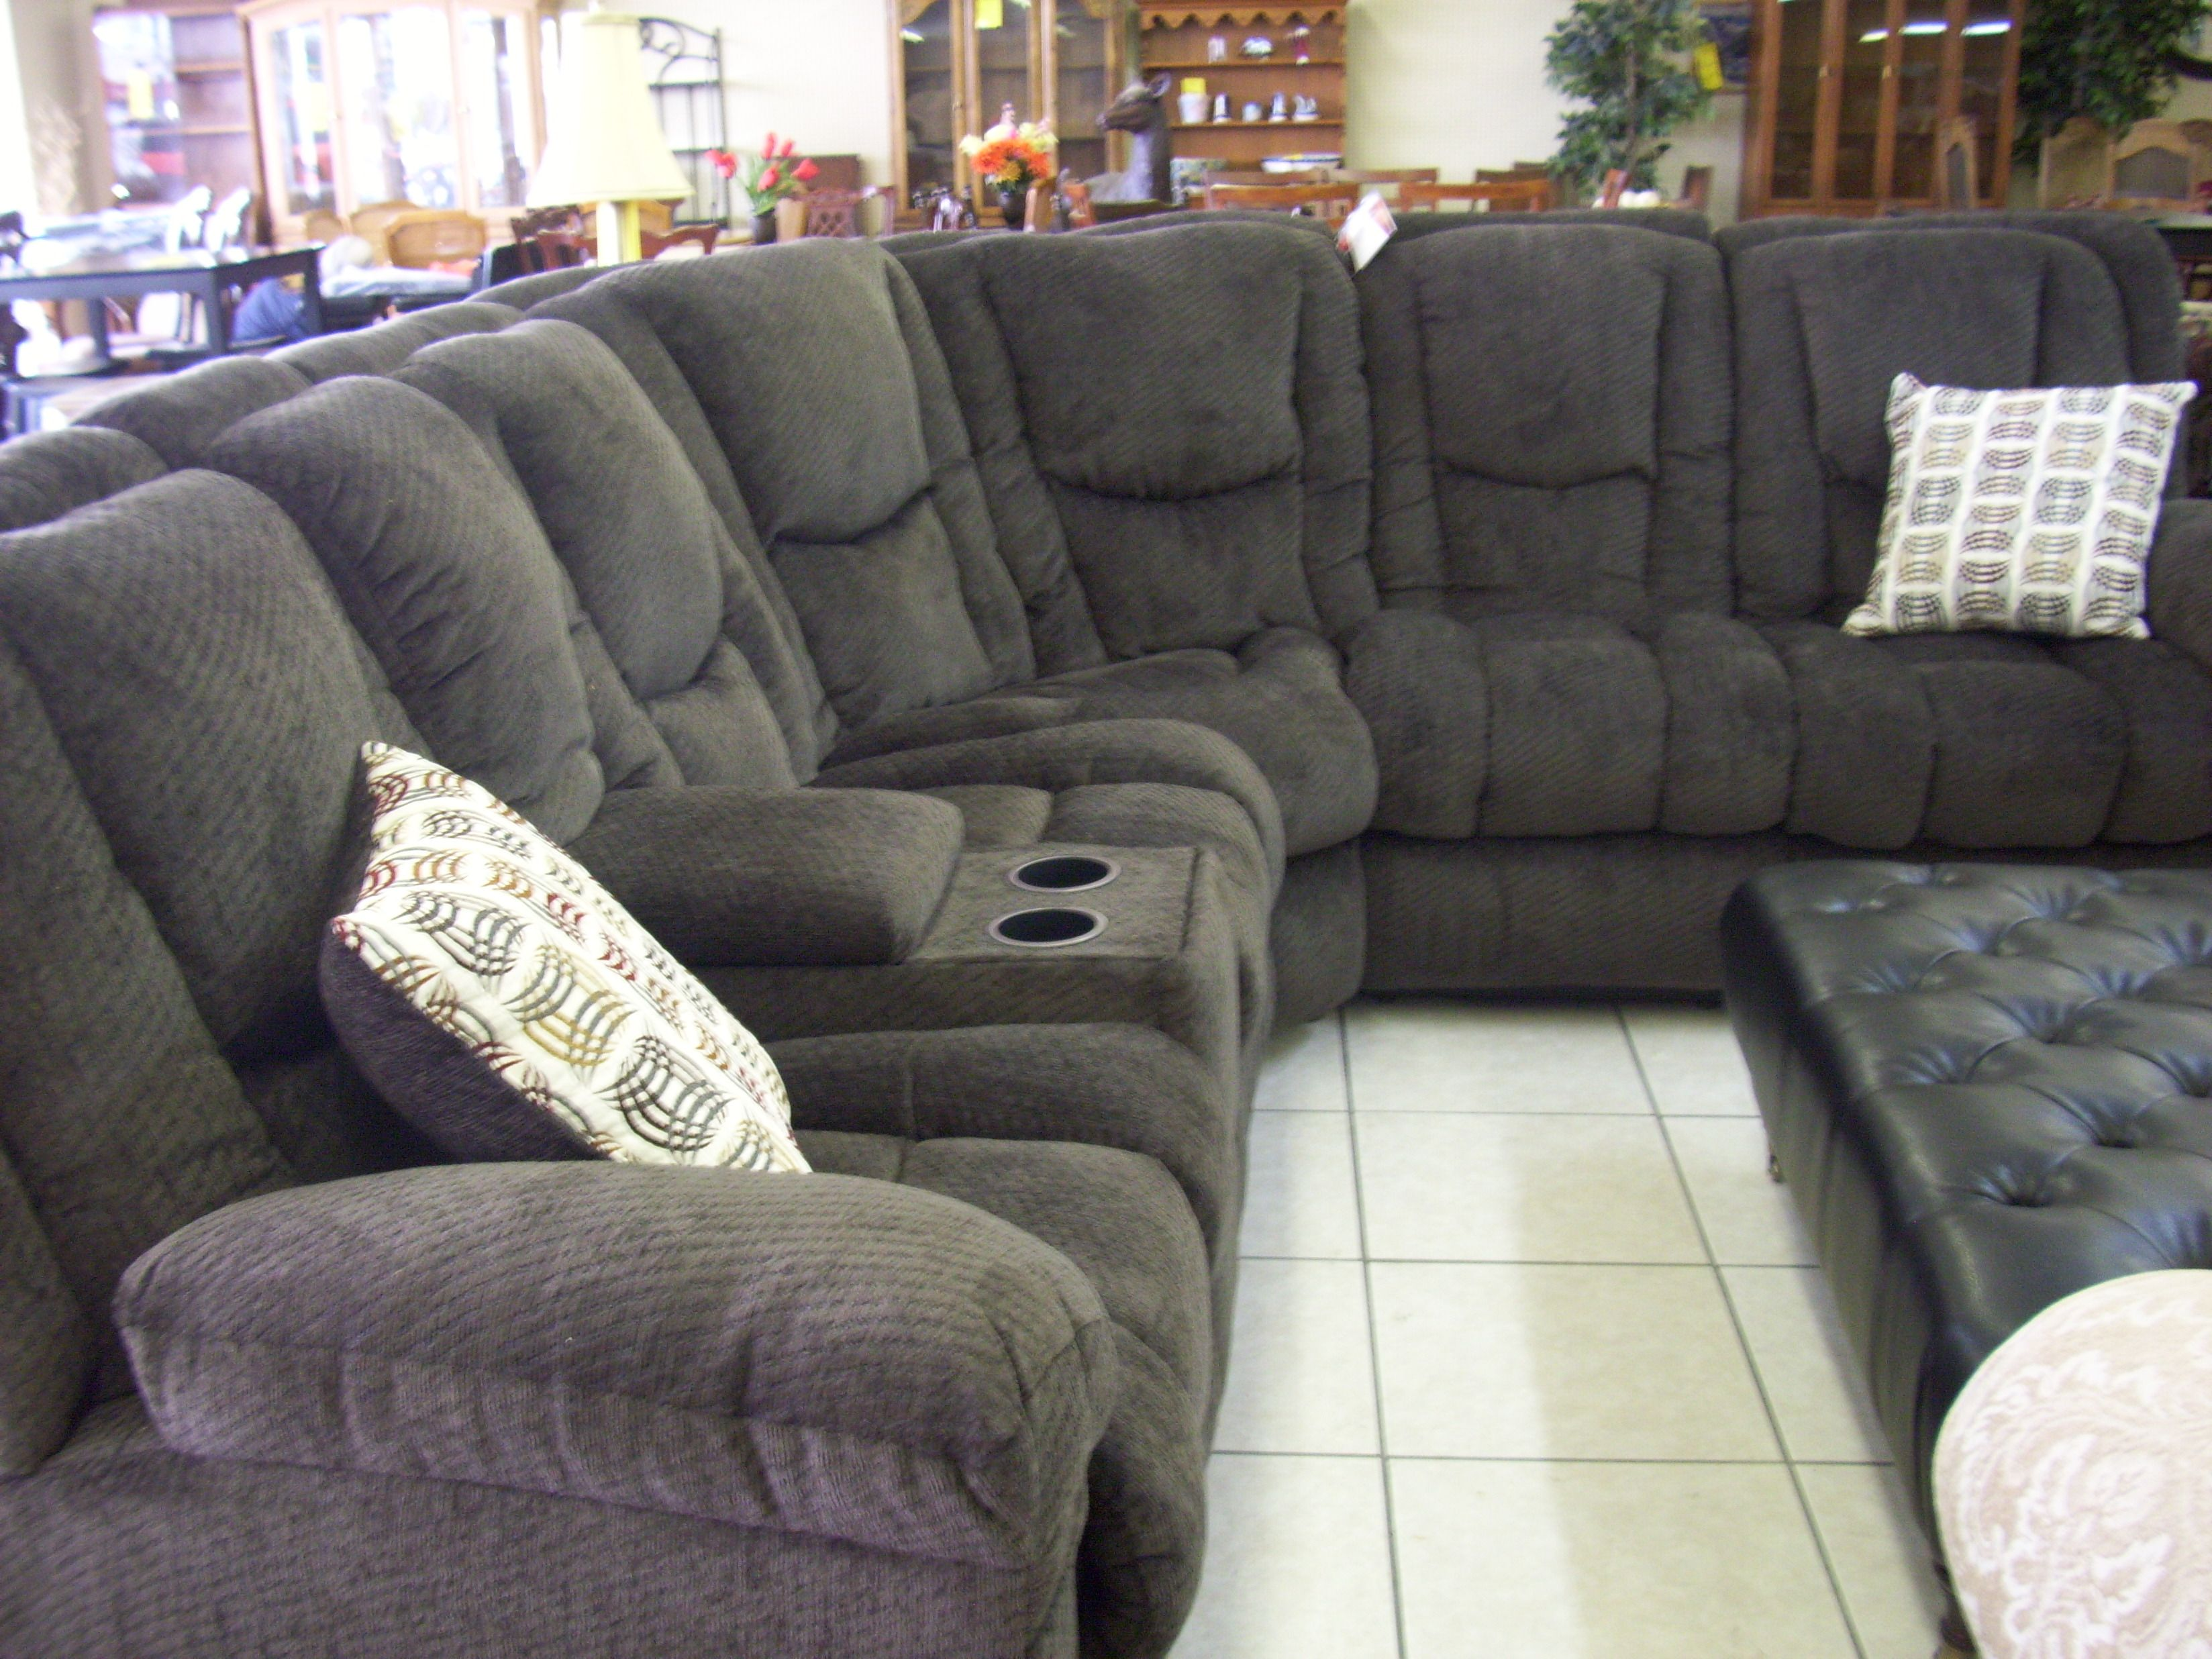 Amazing Charcoall Shaped With 3 Reclining Gray Sectional Sofa On White  Ceramic Tile Flooring In